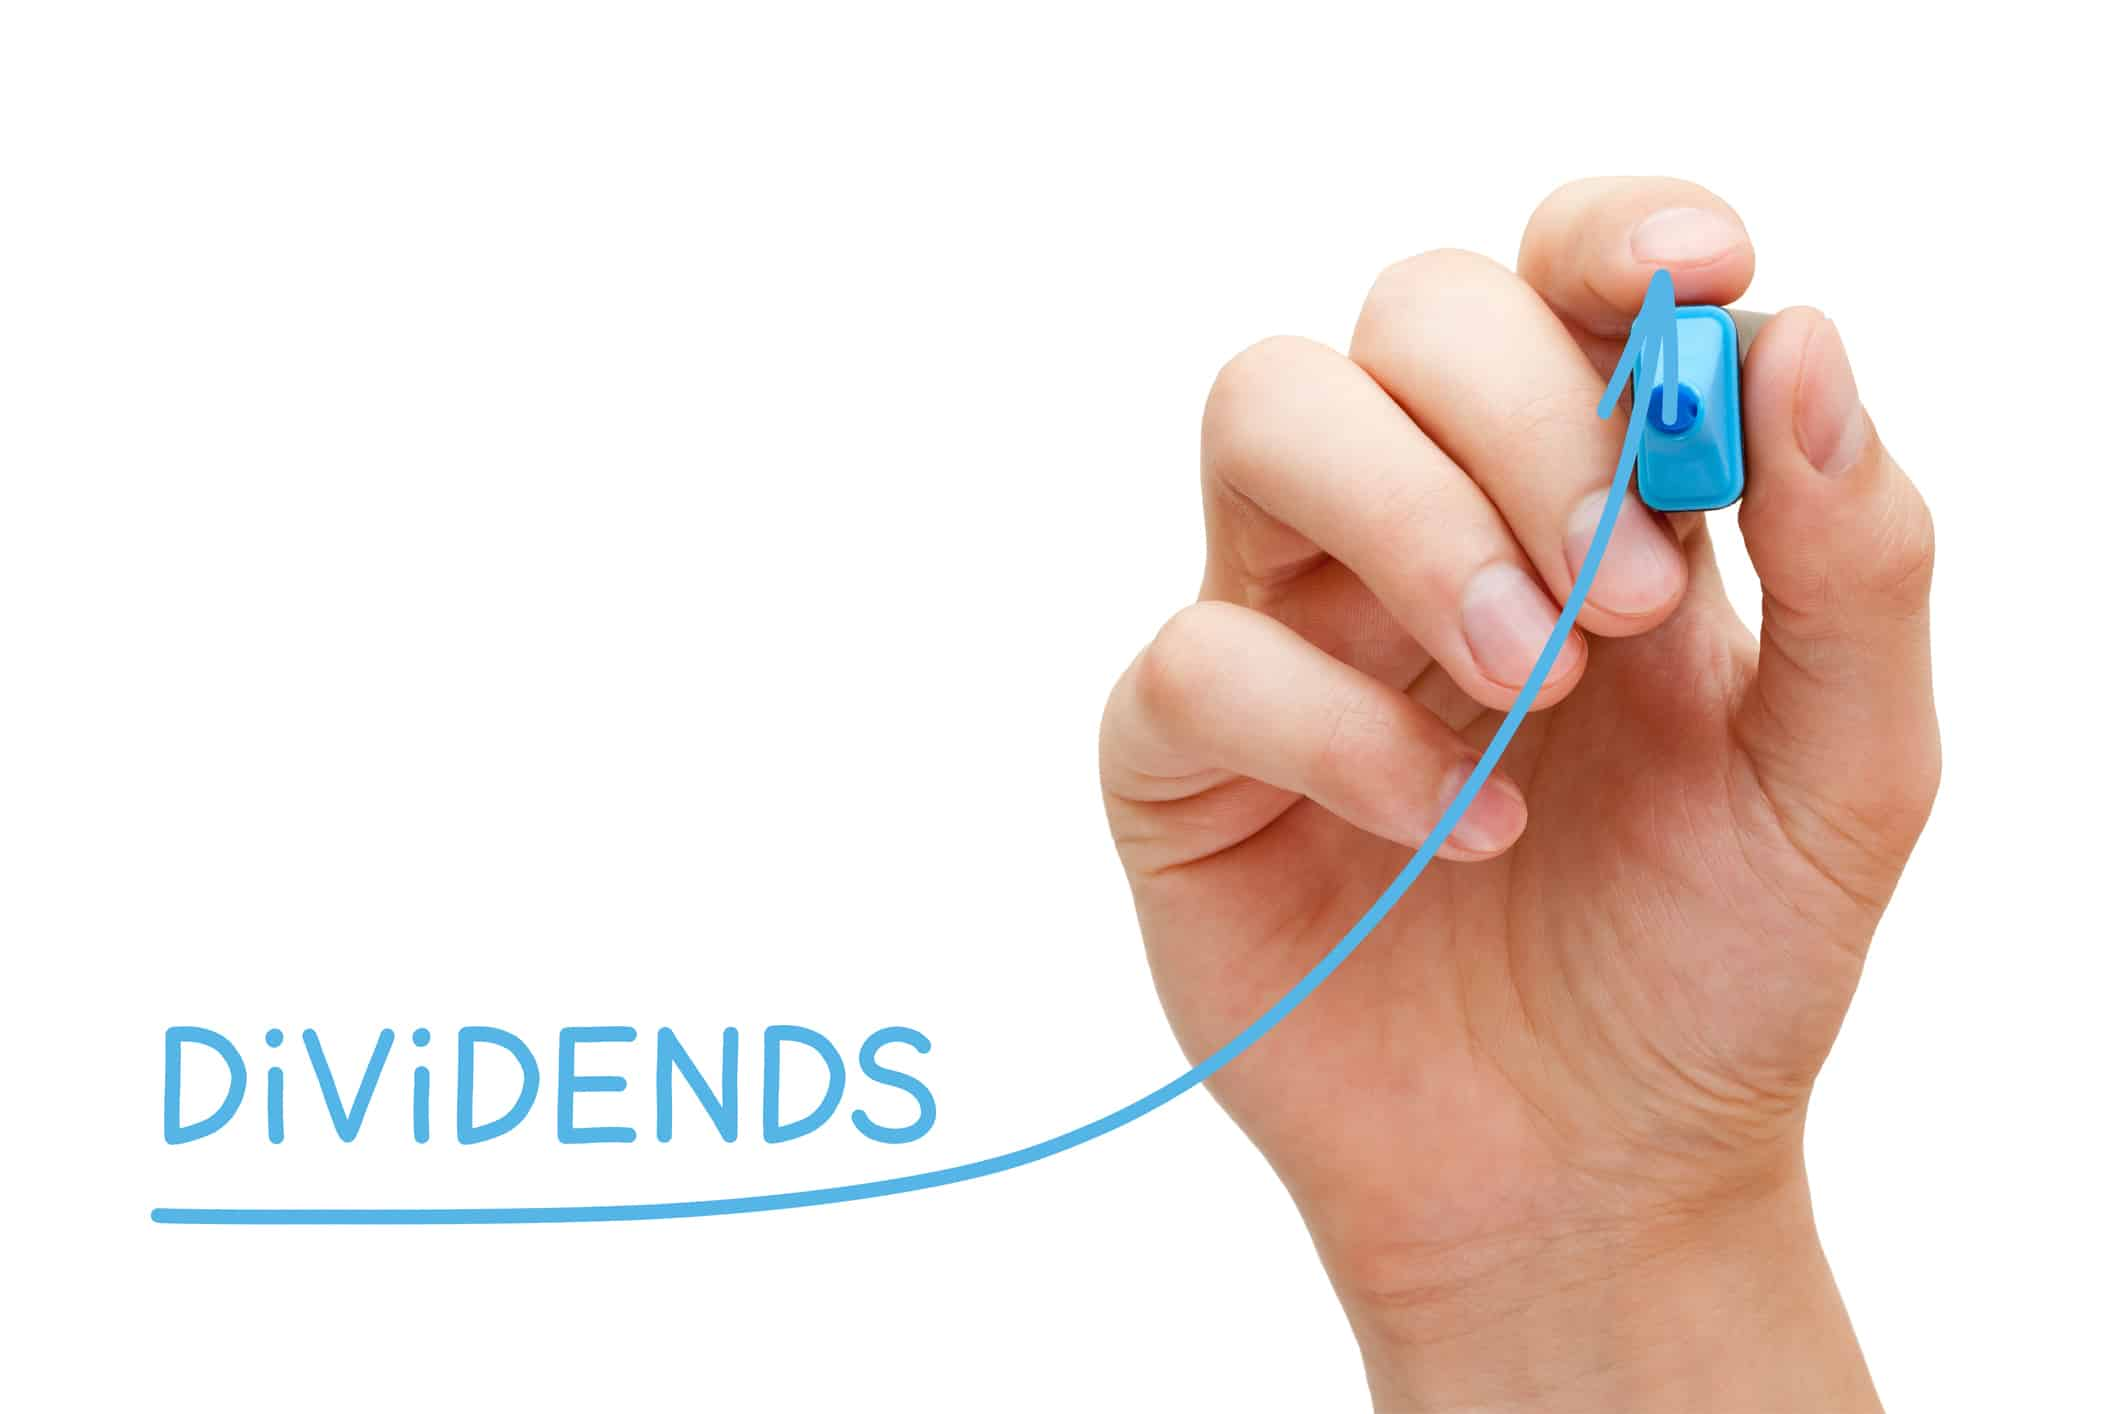 Hand drawing growing Dividends investment business graph with blue marker on transparent wipe board.